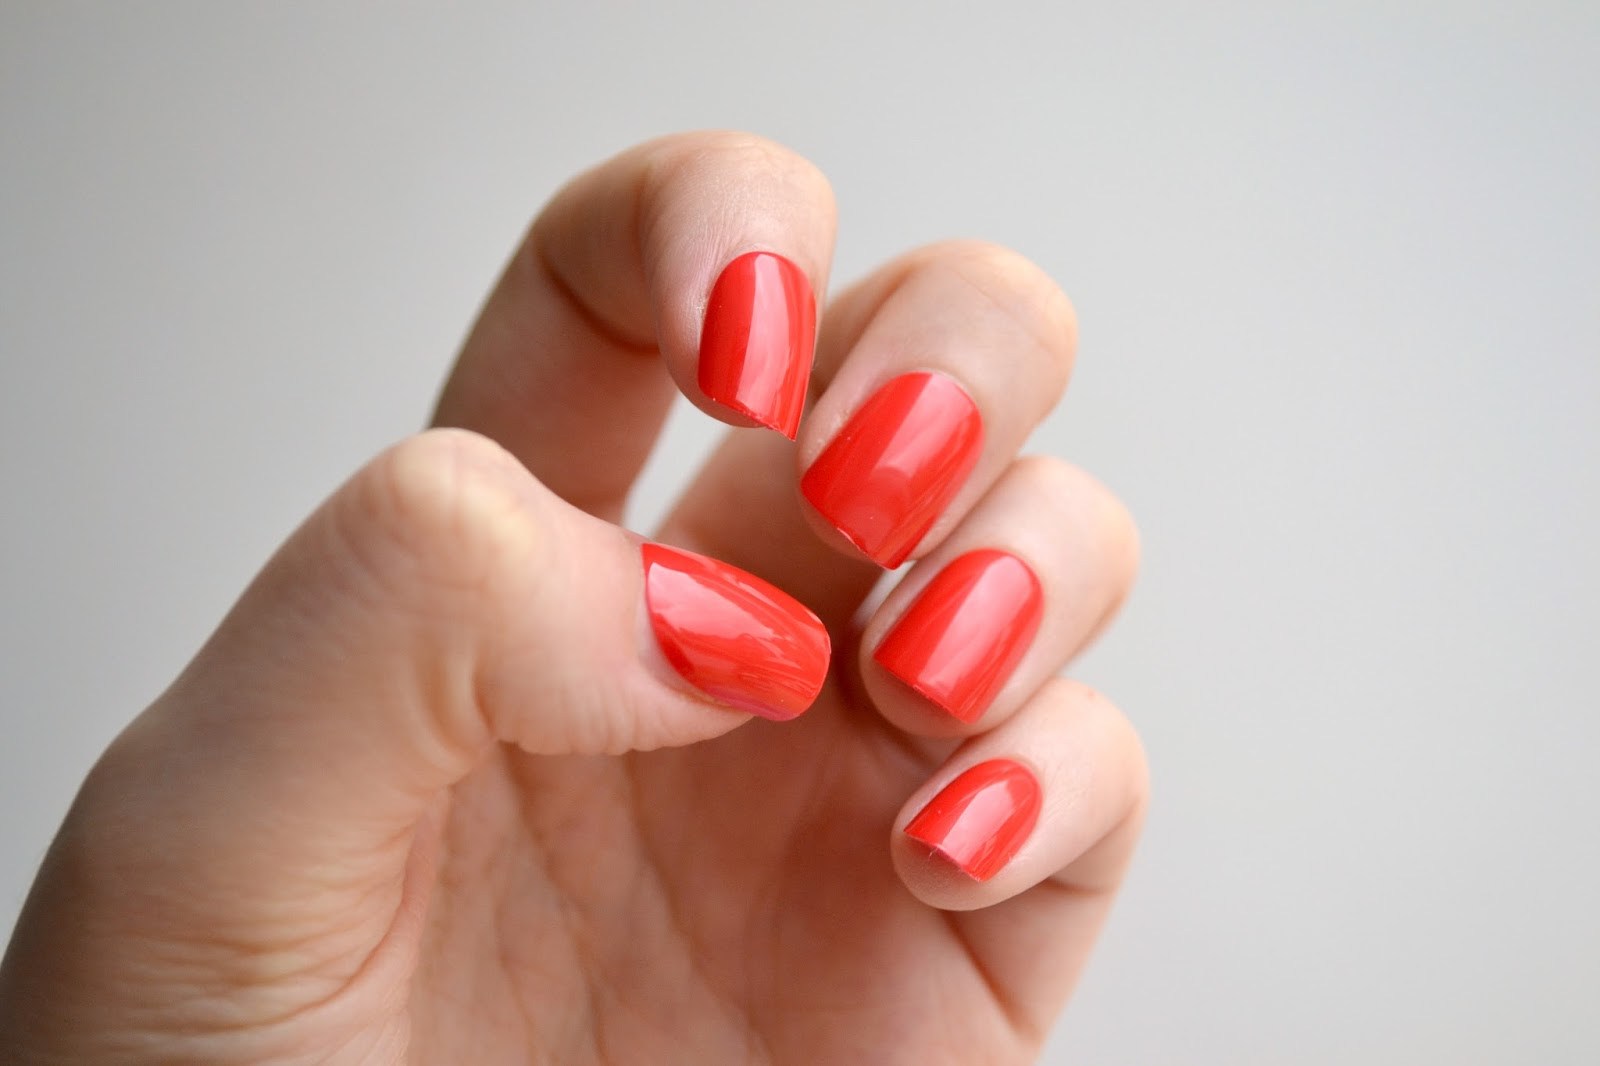 Elegant Touch Polished False Nails in Red on the nails